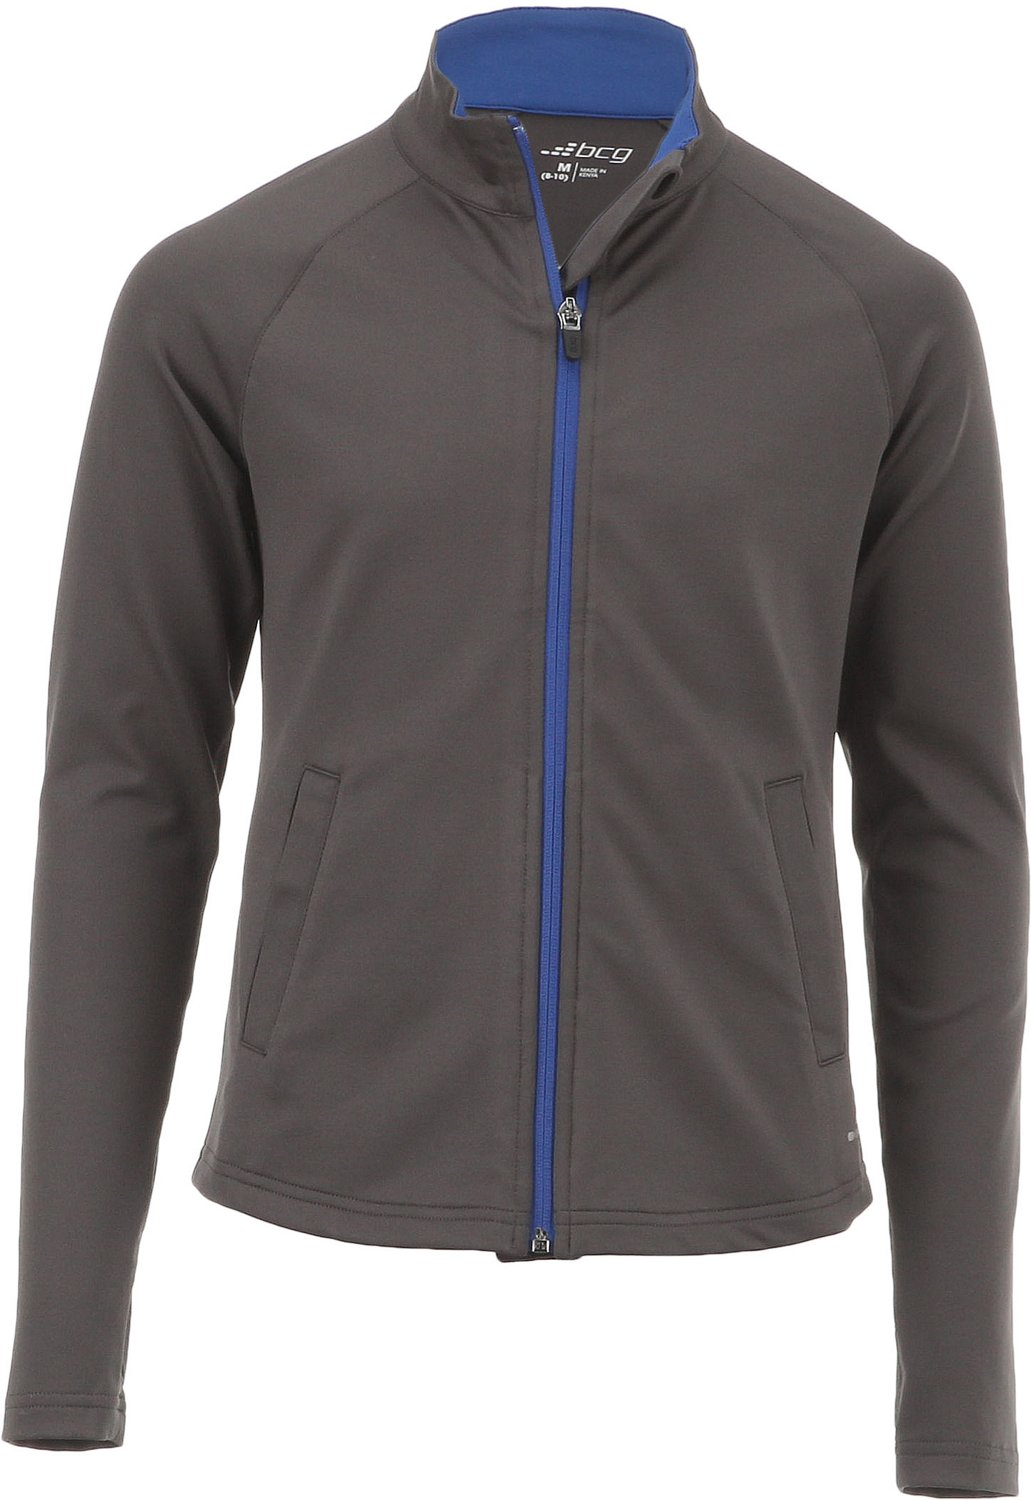 Display product reviews for BCG Girls' Performance Full Zip Training Jacket